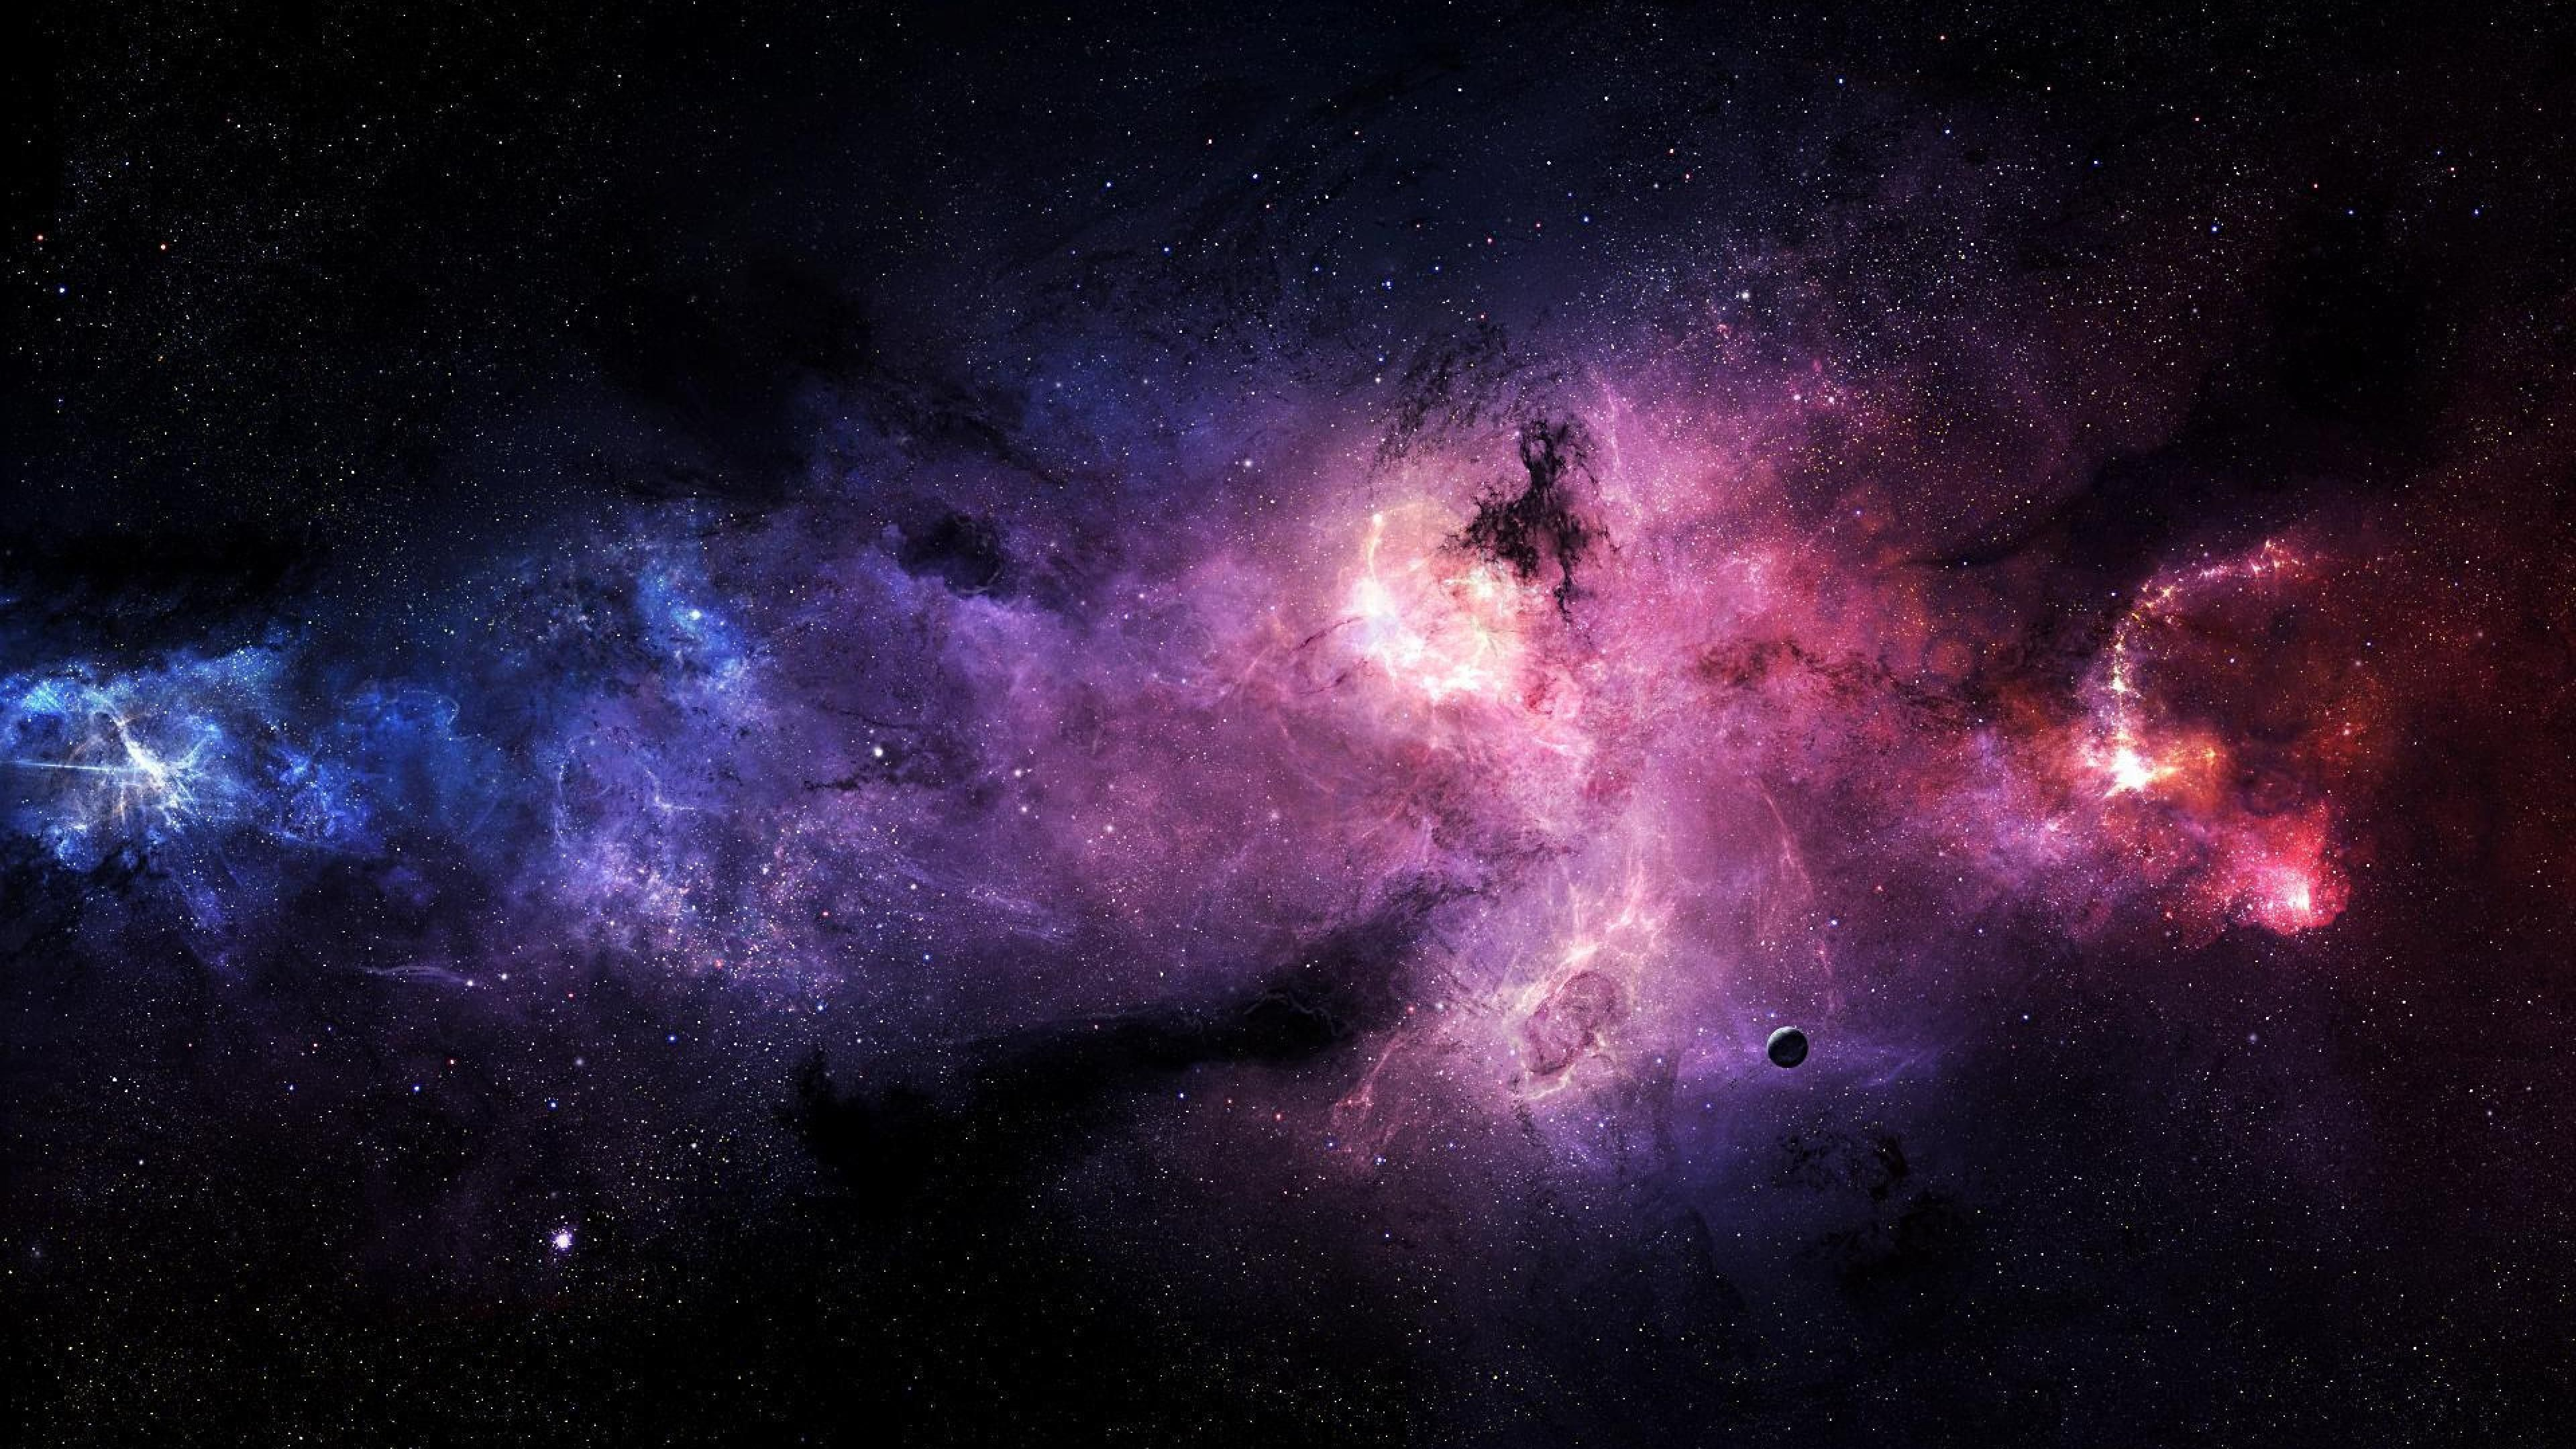 Res 3840x2160 Hd Space Wallpapers Find Best Latest Hd Space Wallpapers For Your Pc Desktop Background Mobile Phones Galaxy Wallpaper Resim Sanati Resim